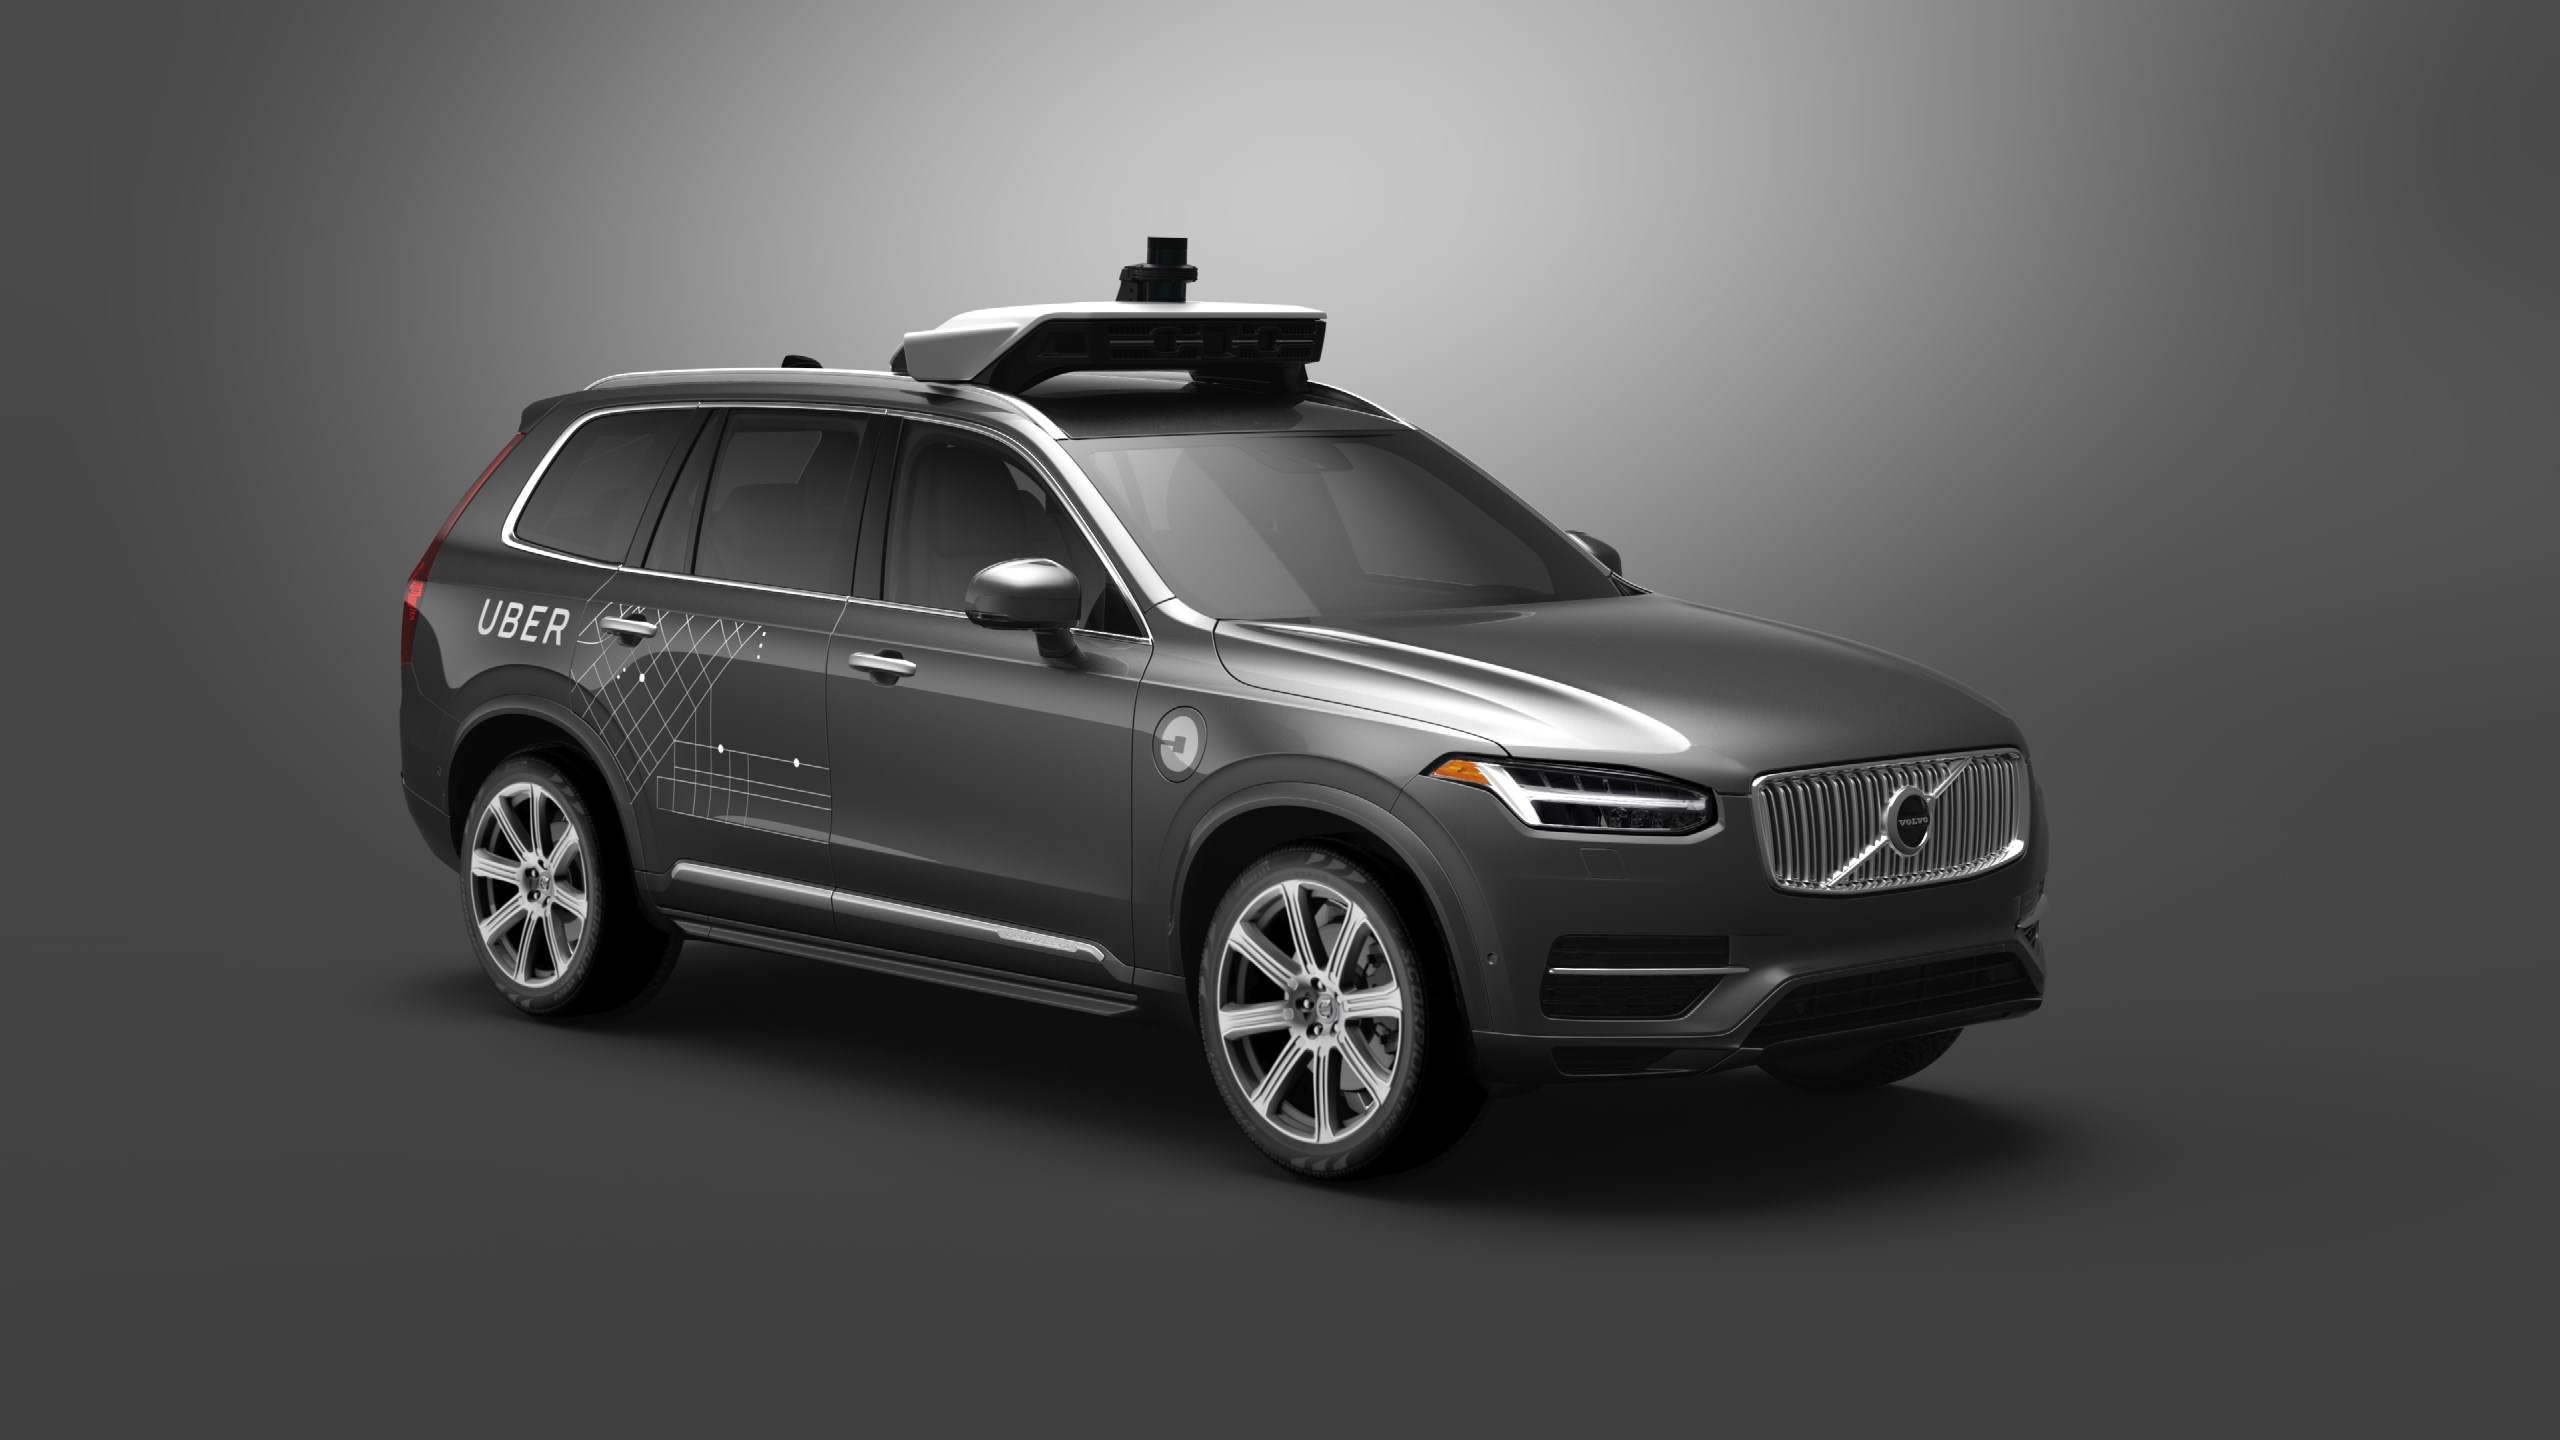 image of a volvo car which is being used as an uber taxi